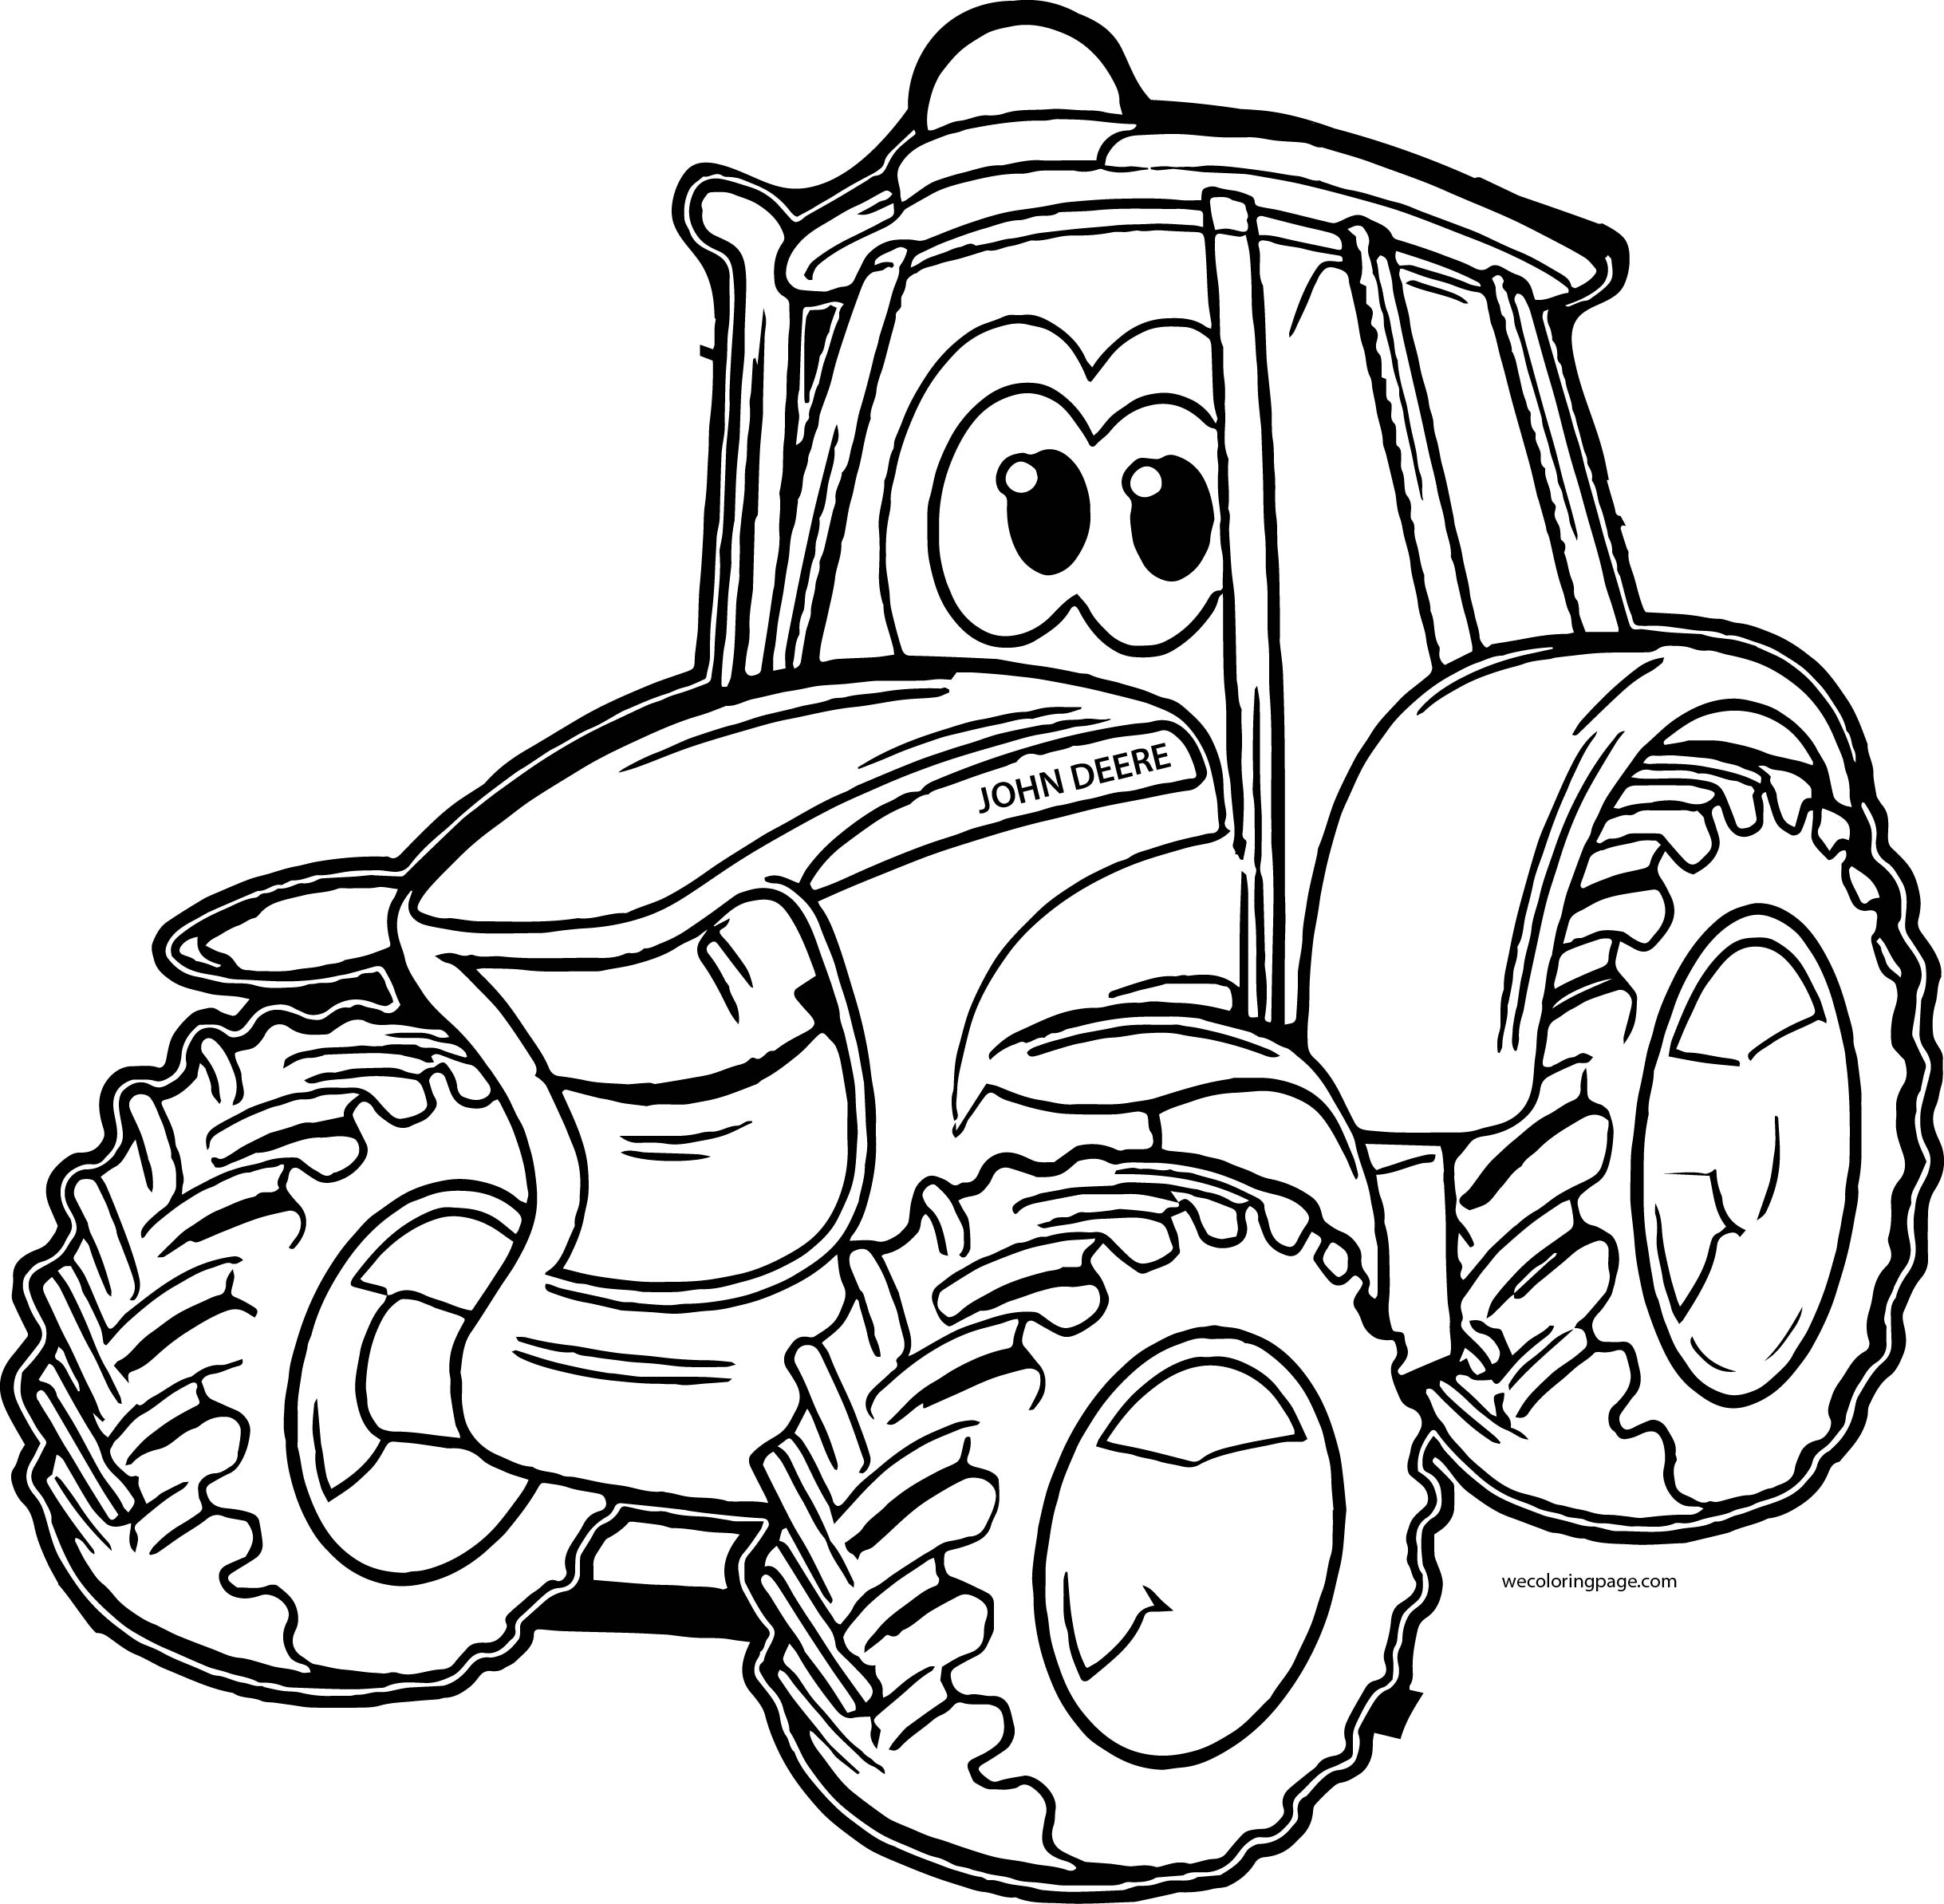 Toddler coloring pages of tractors - John Johnny Deere Tractor Coloring Pages